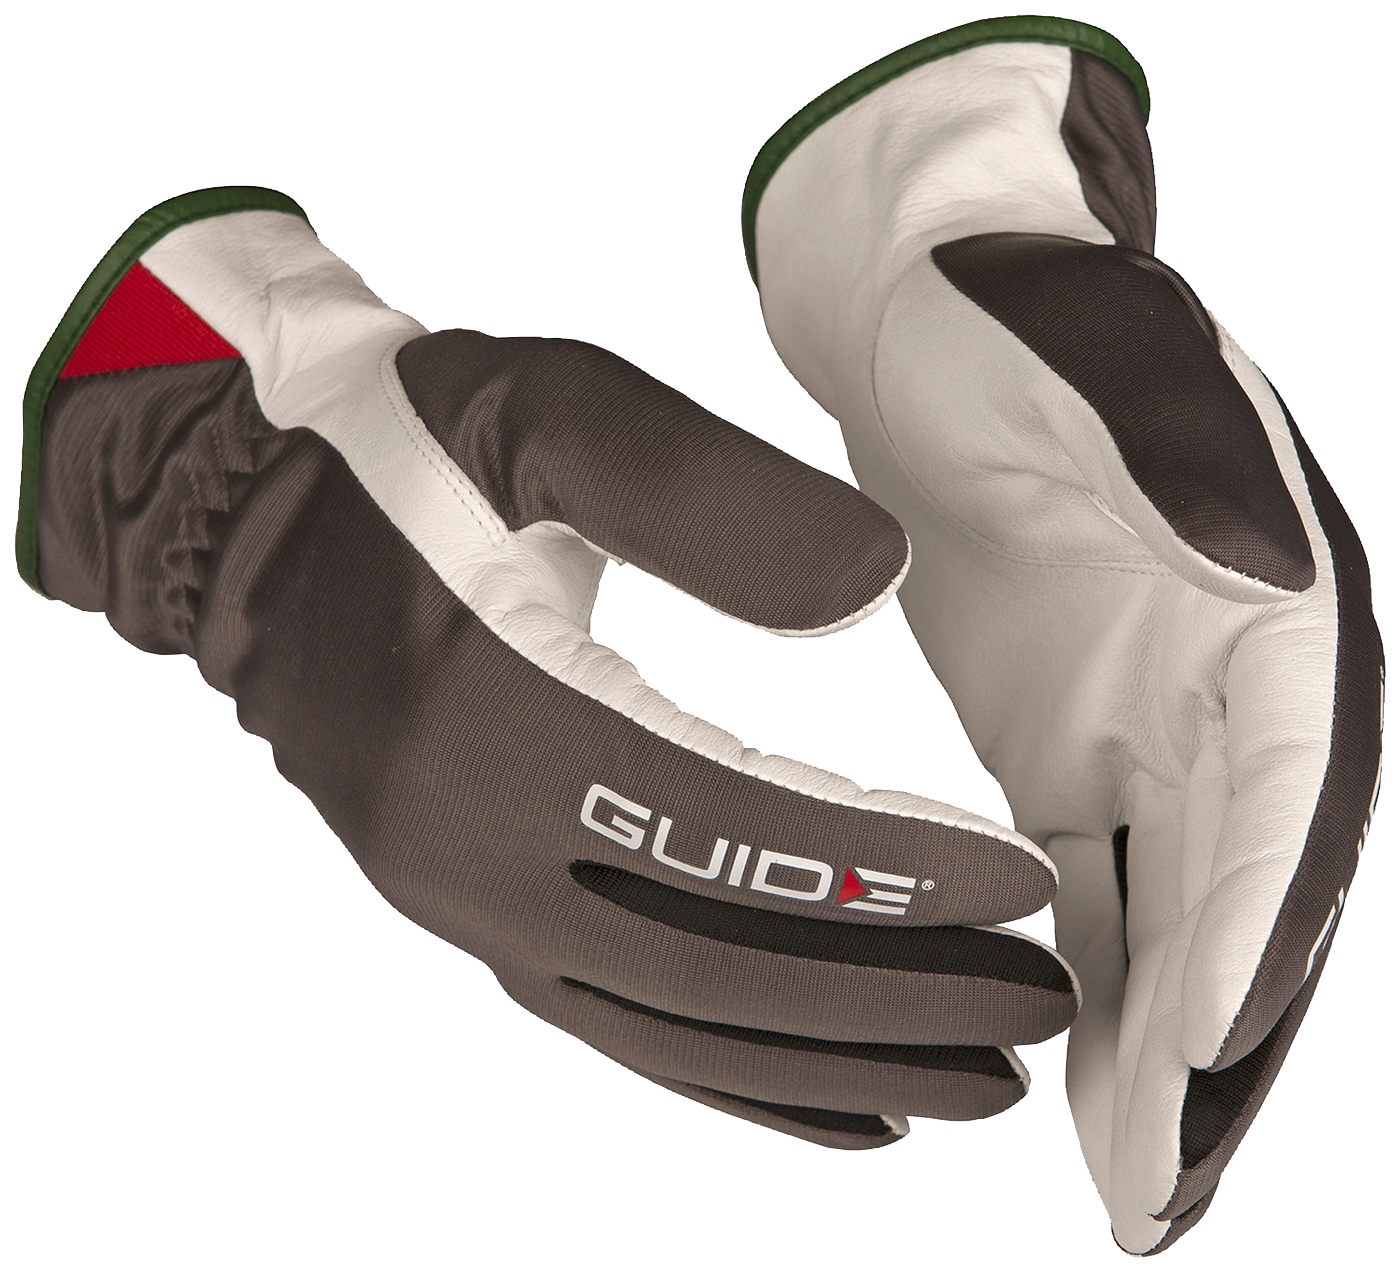 Cut Protection Glove GUIDE 341